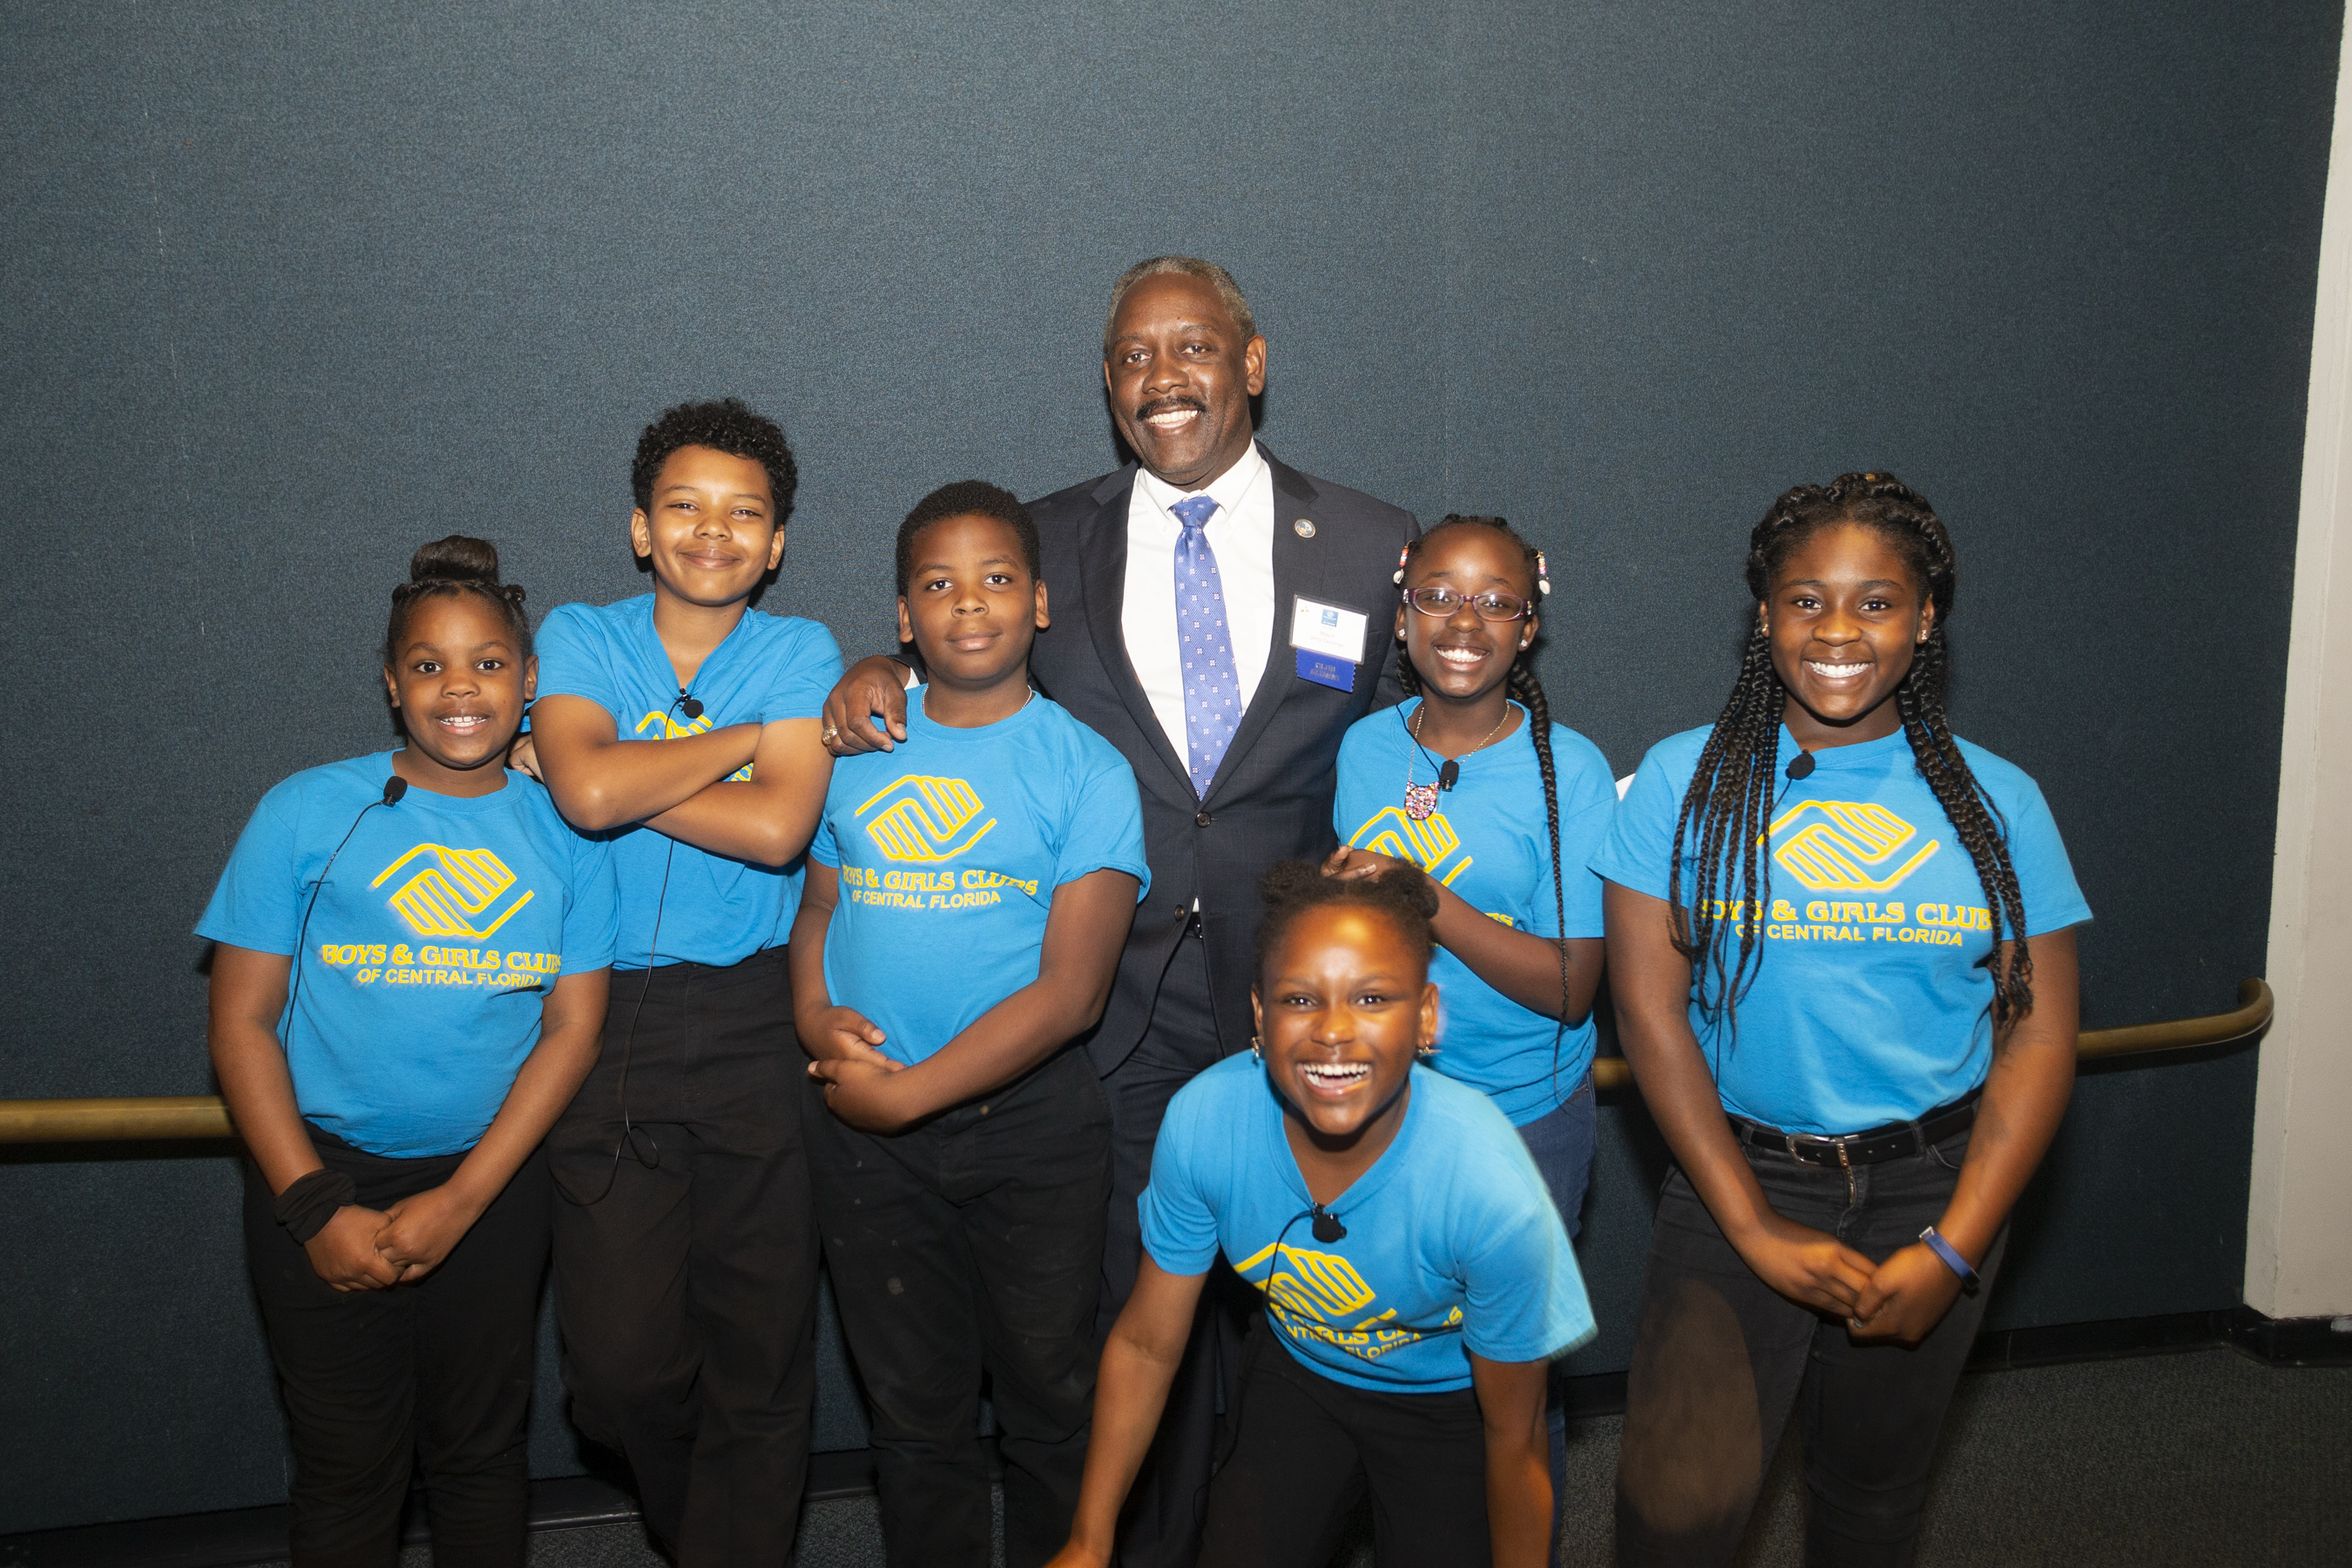 Mayor Demings posing for a photo and embracing the six children surrounding him. The children are wearing their Boys and Girls club t-shirt and are elated to be taking a photo.